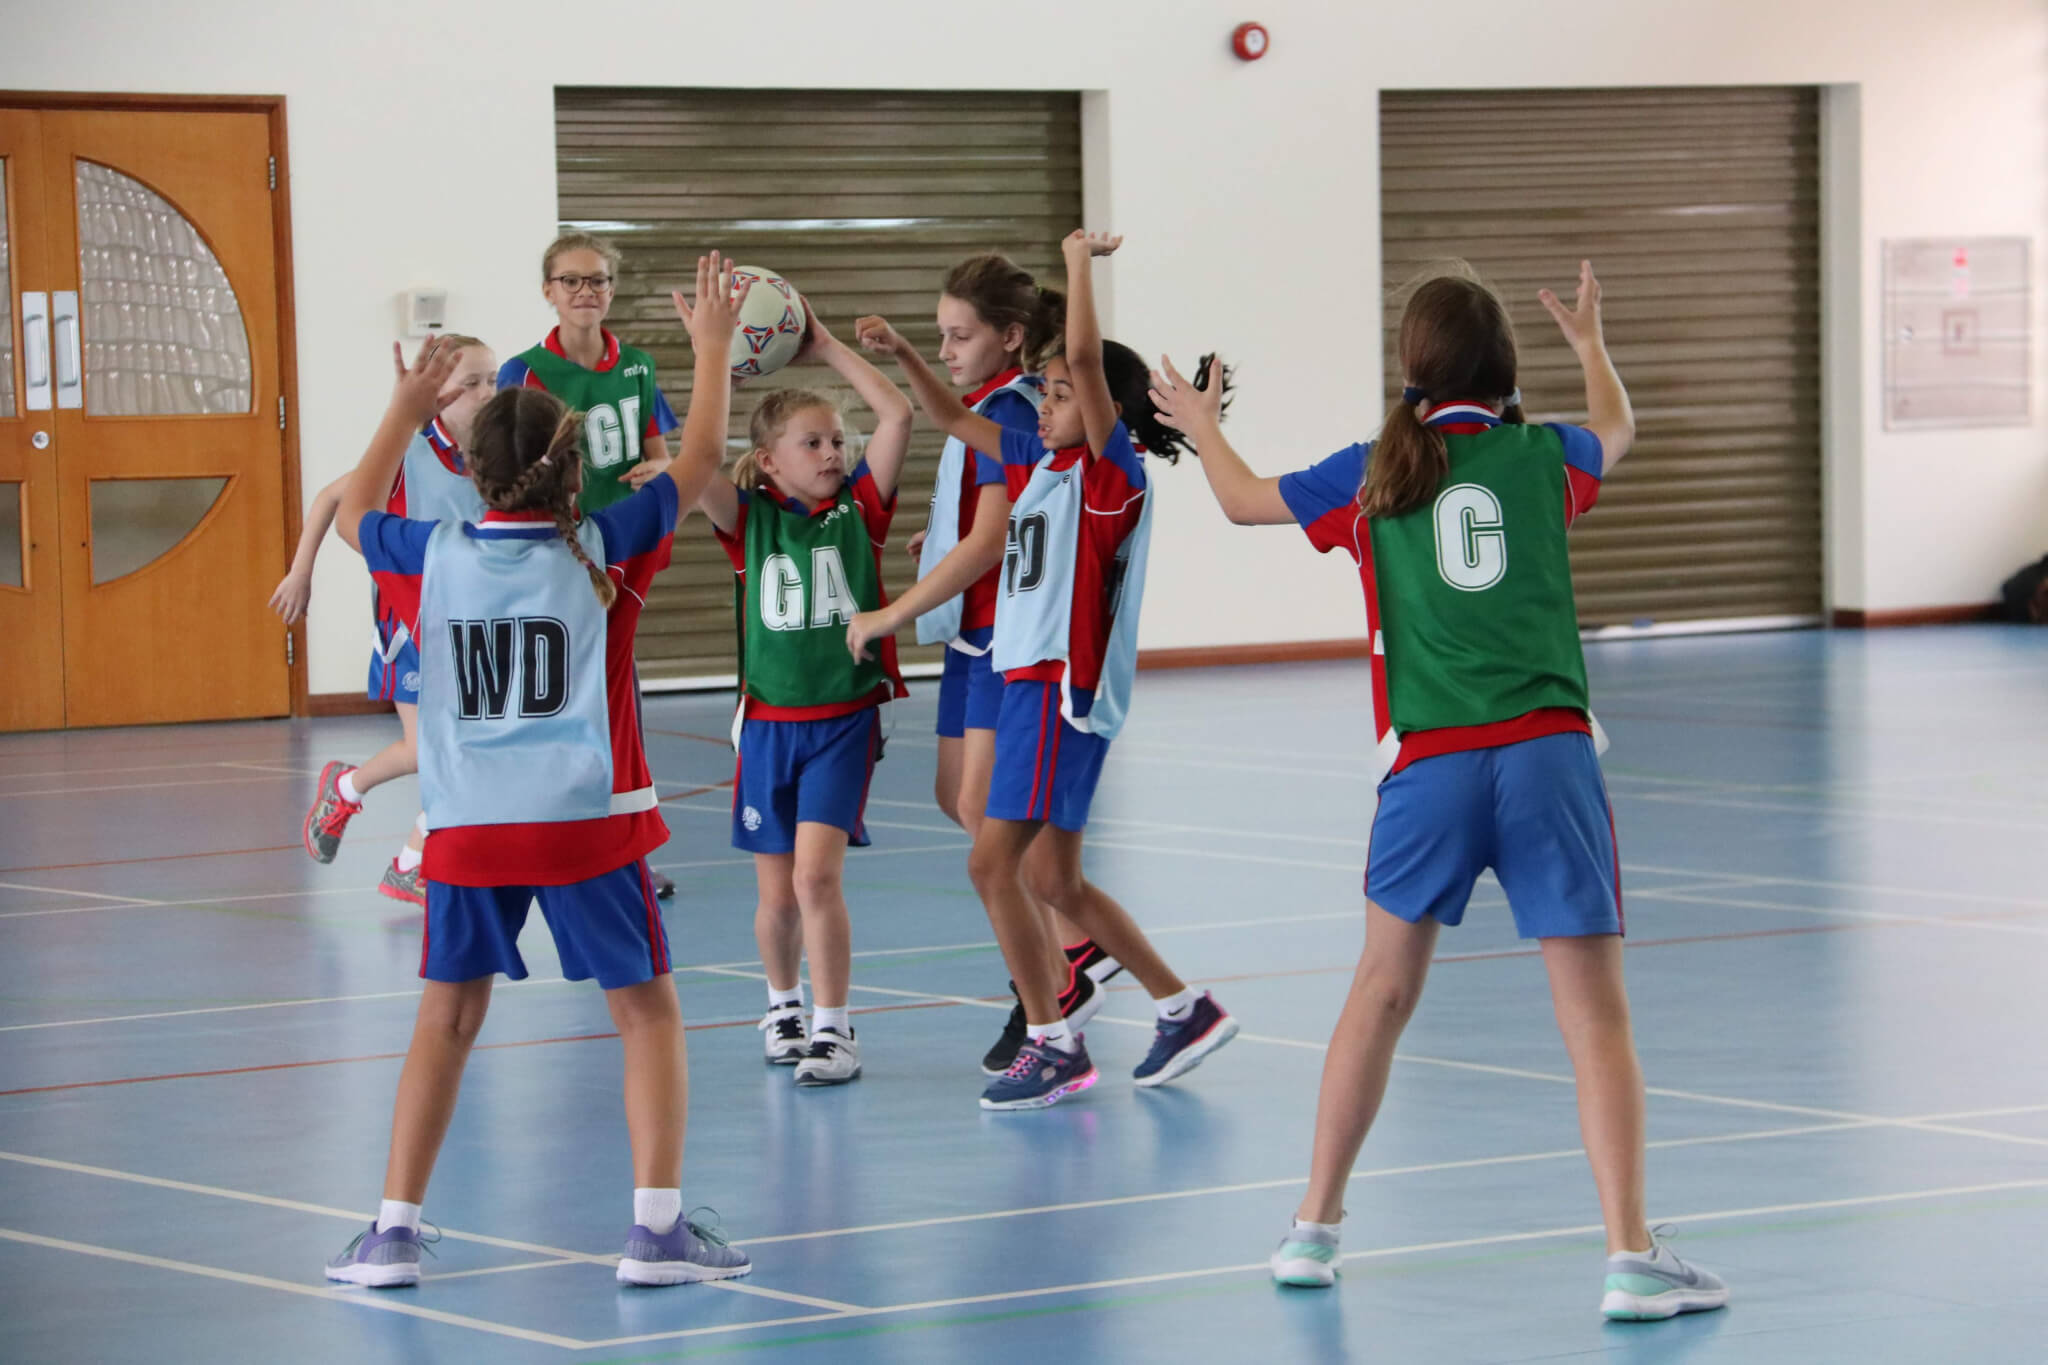 Yr5 Netball - Mark Holness